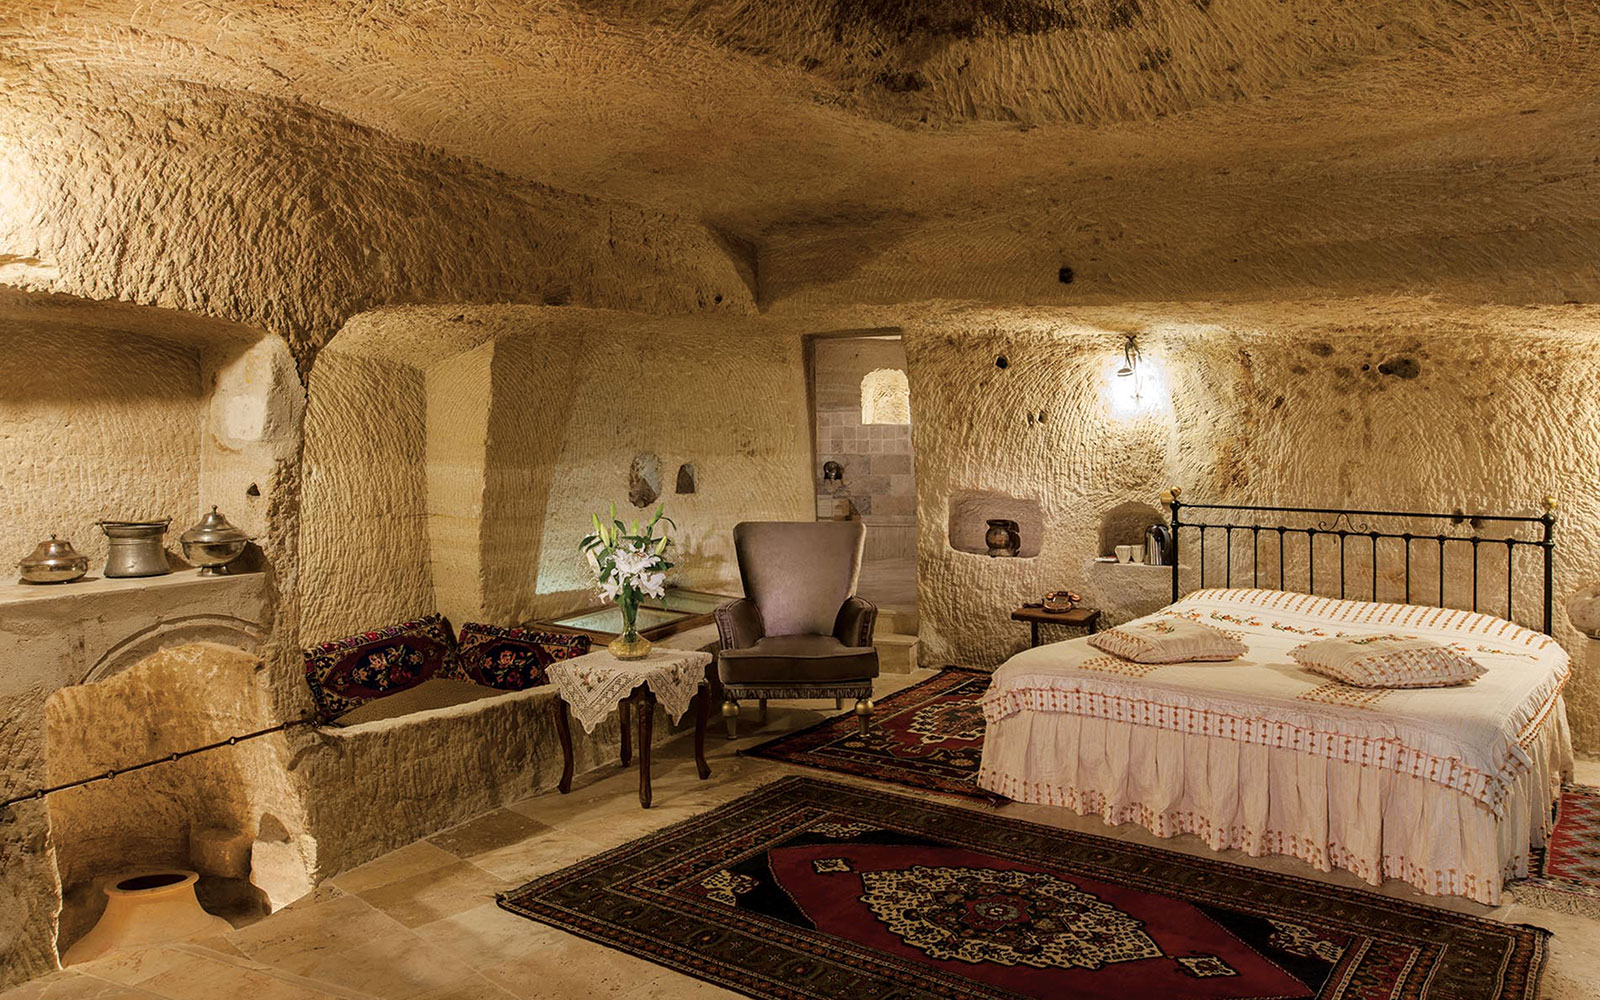 cave room in Aydinli Cave House Hotel at Göreme, Turkey